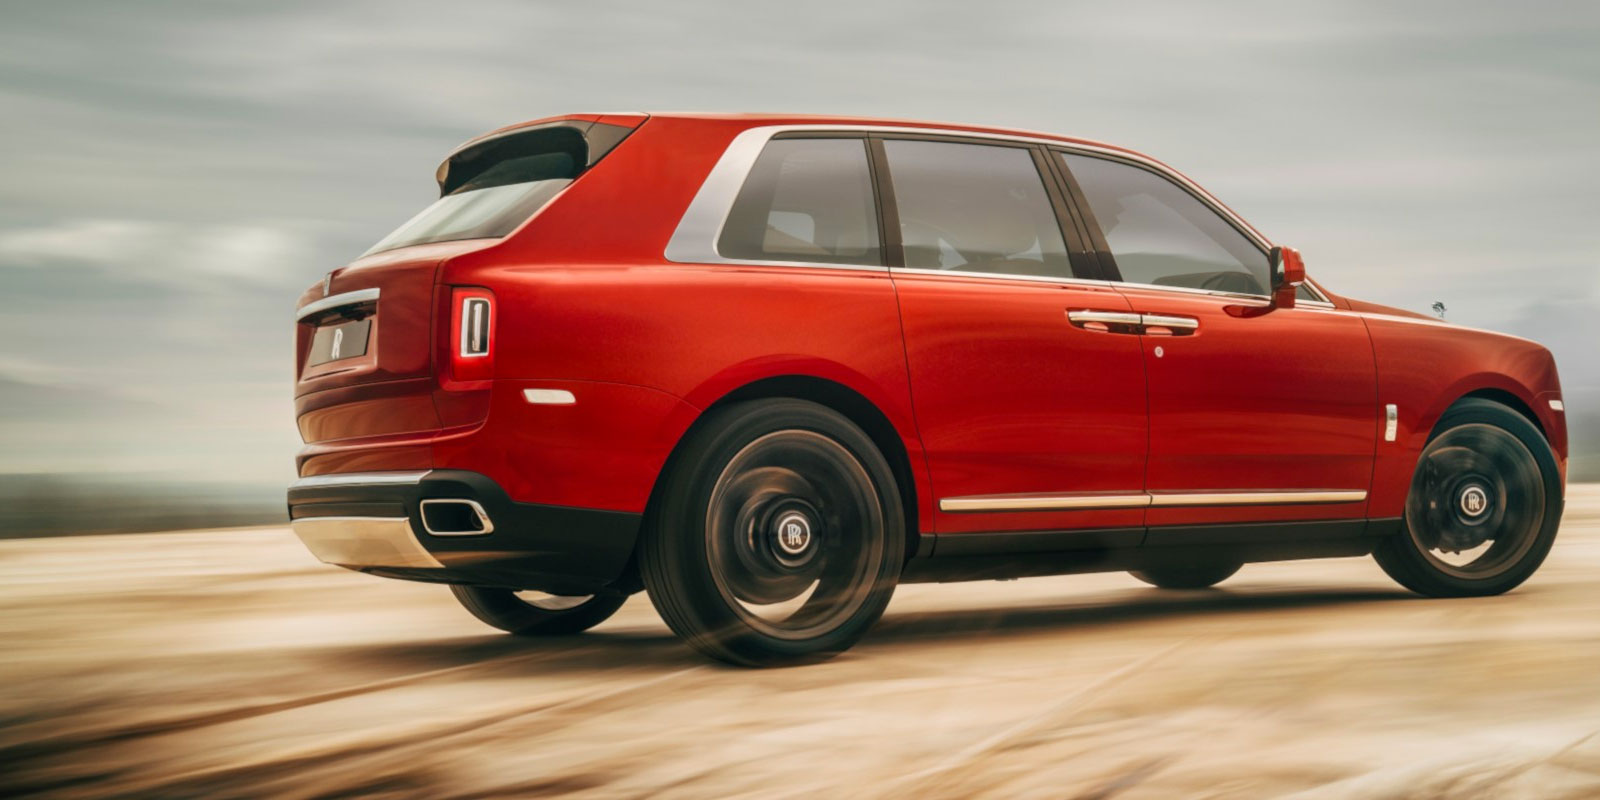 New Rolls-Royce Cullinan Series Cars at Grange